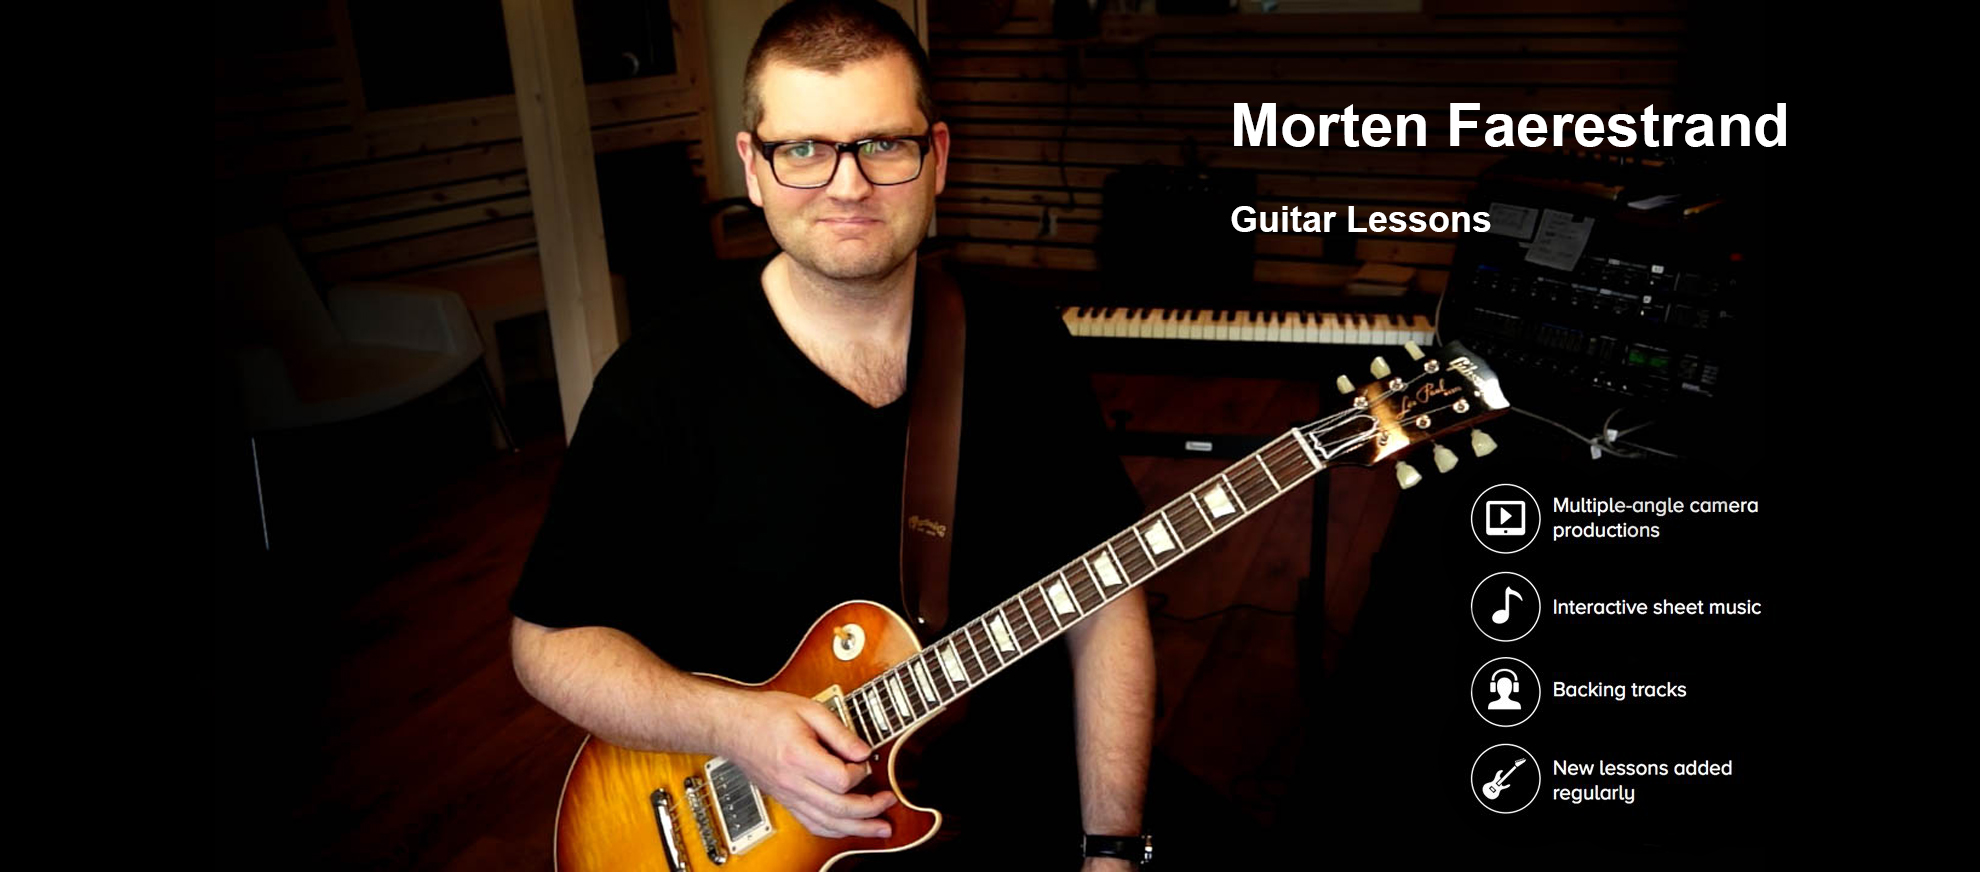 Morten Faerestrand Jazz Guitar Lessons